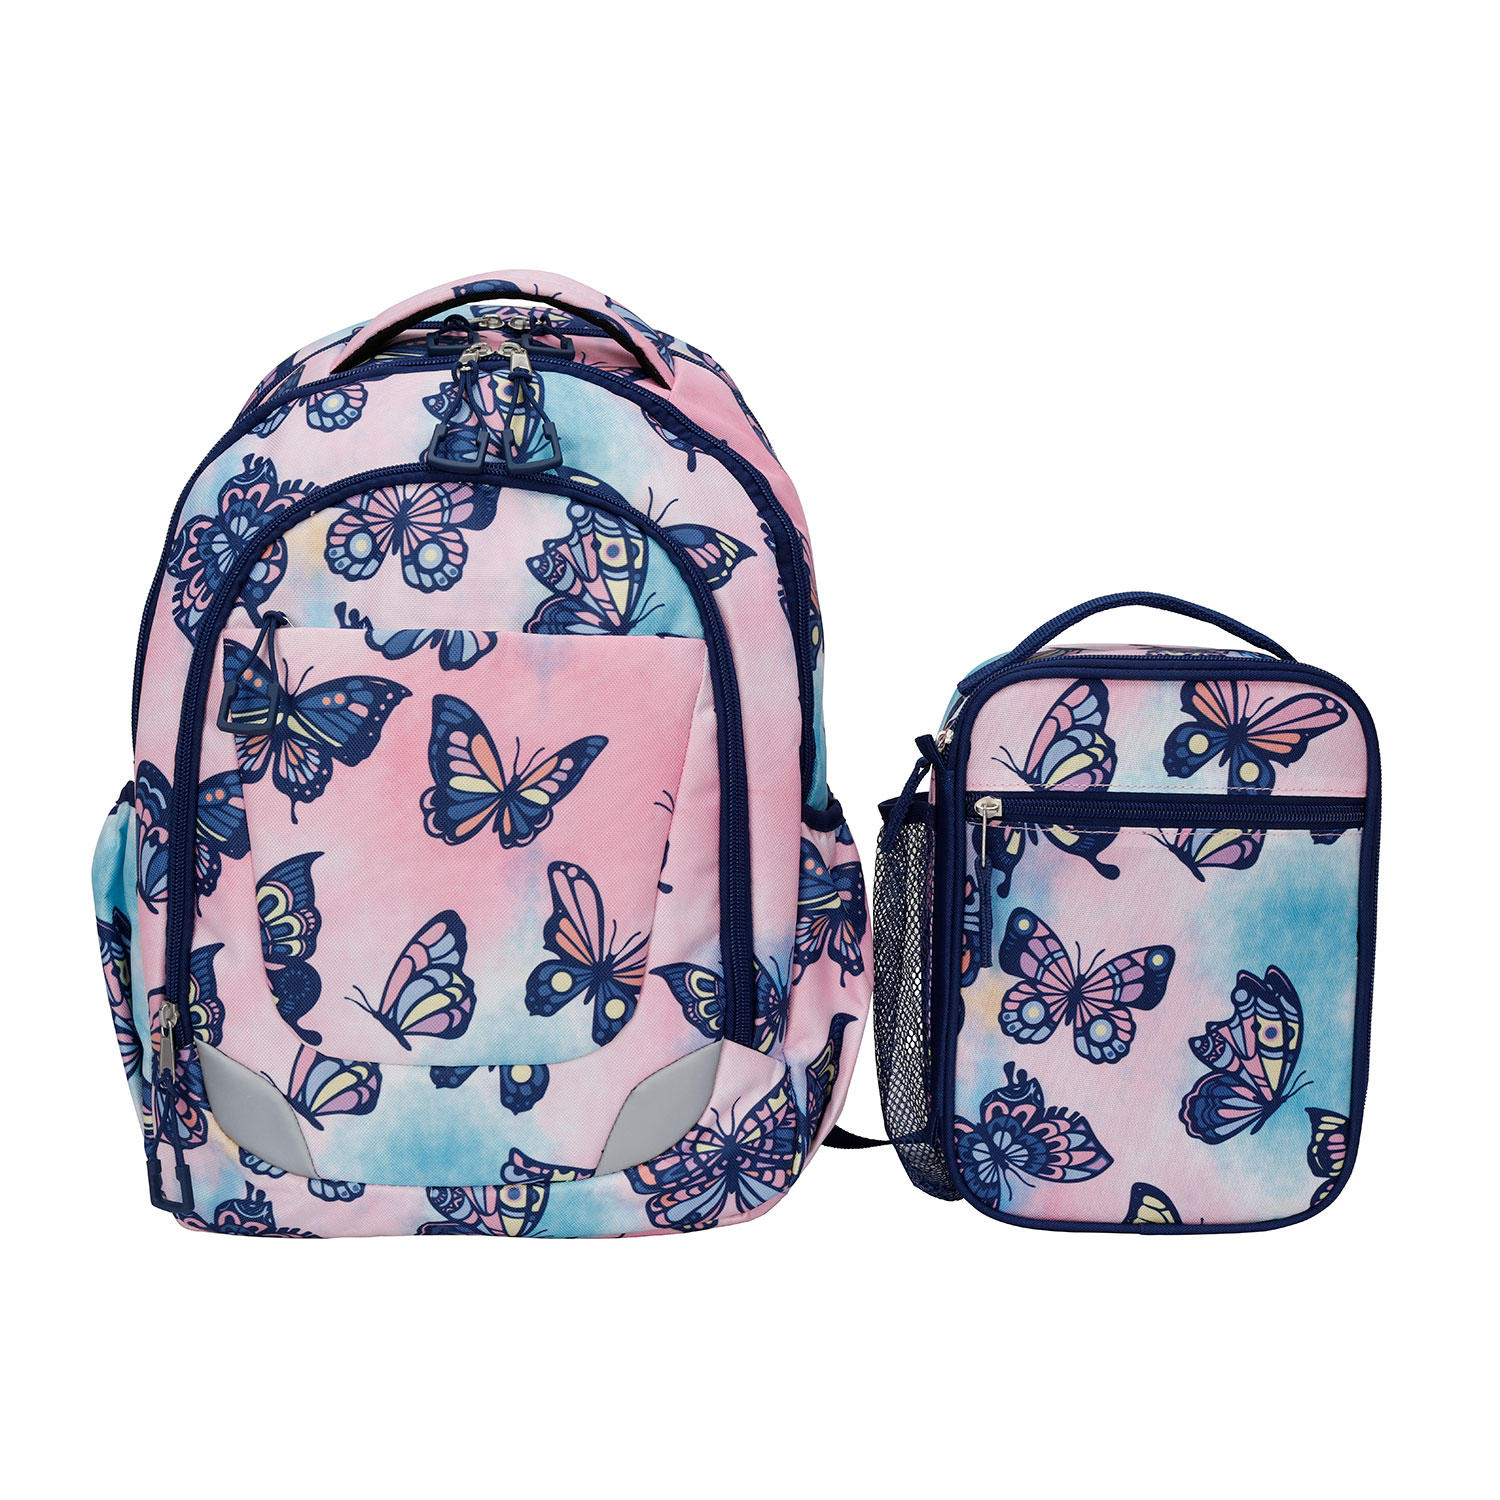 2-Piece Crckt Youth Backpack Set with Matching Lunch Kit